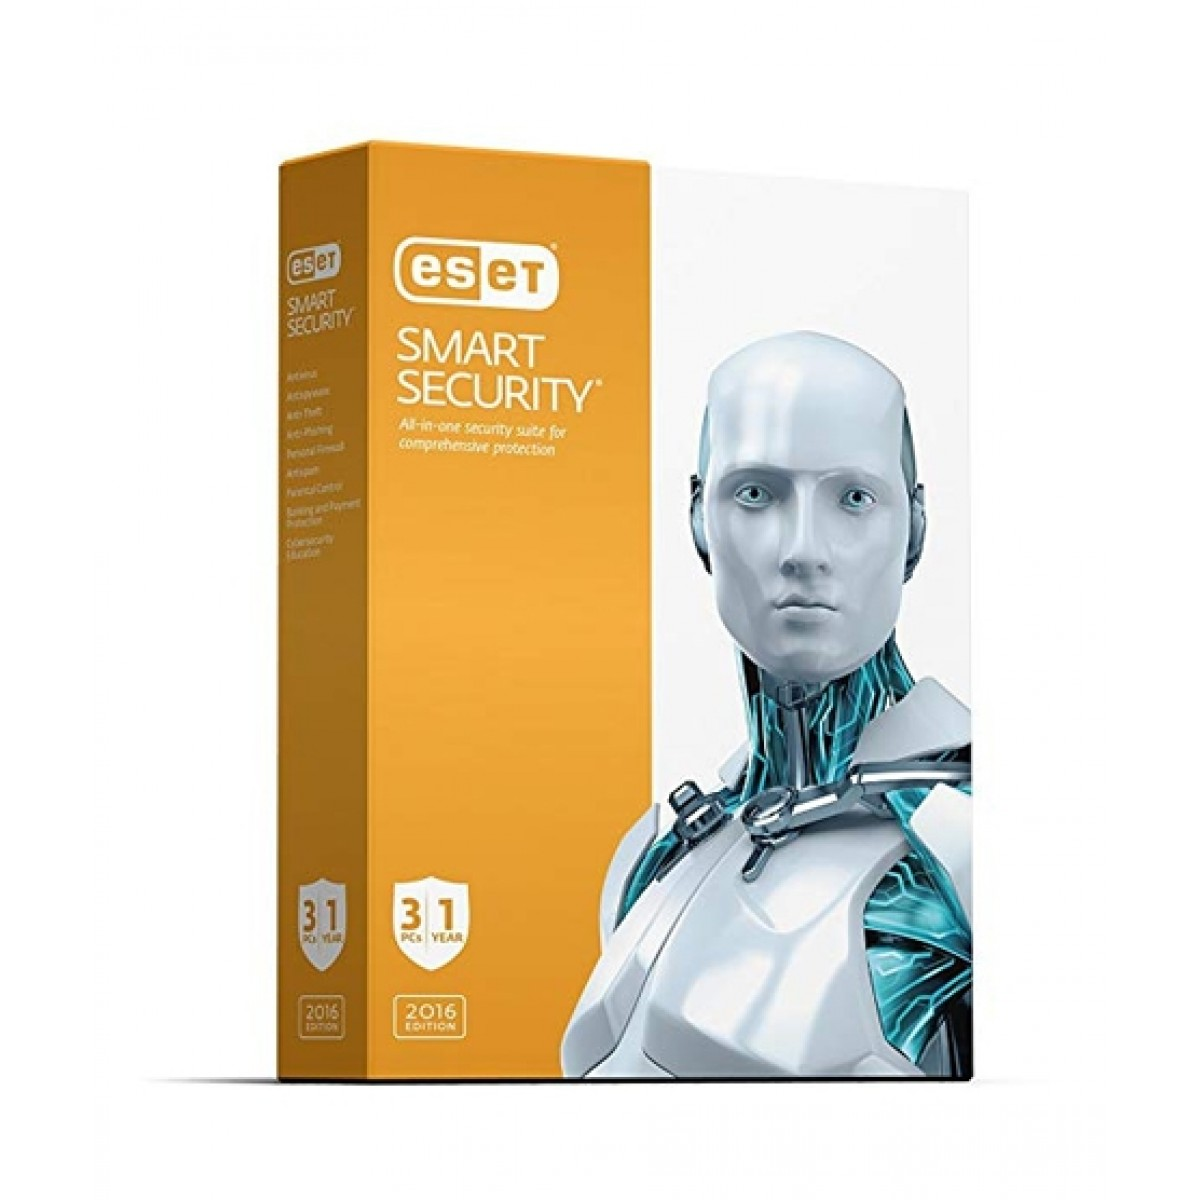 ESET Smart Security 3 PC (1 Year License)